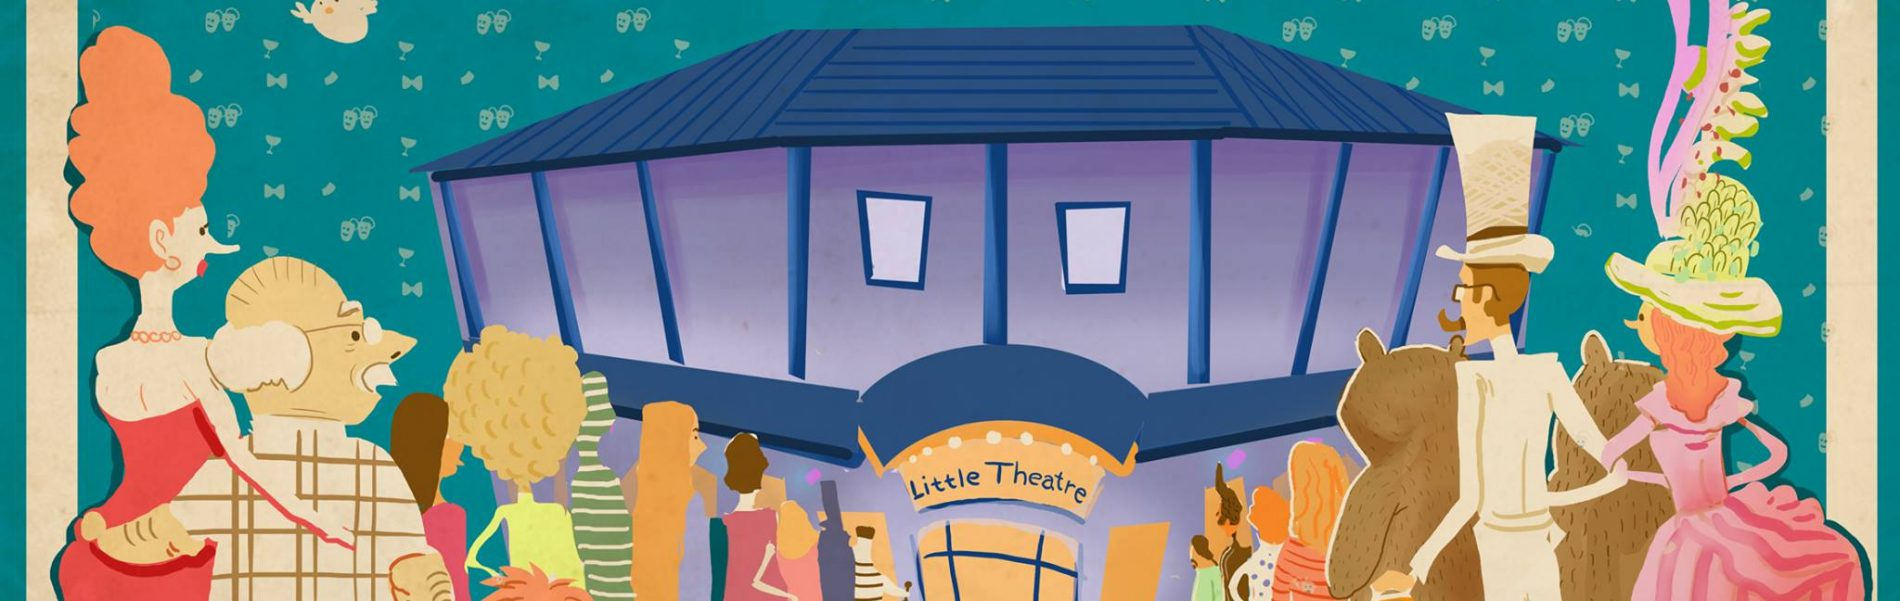 Sheringham Little Theatre cartoon image